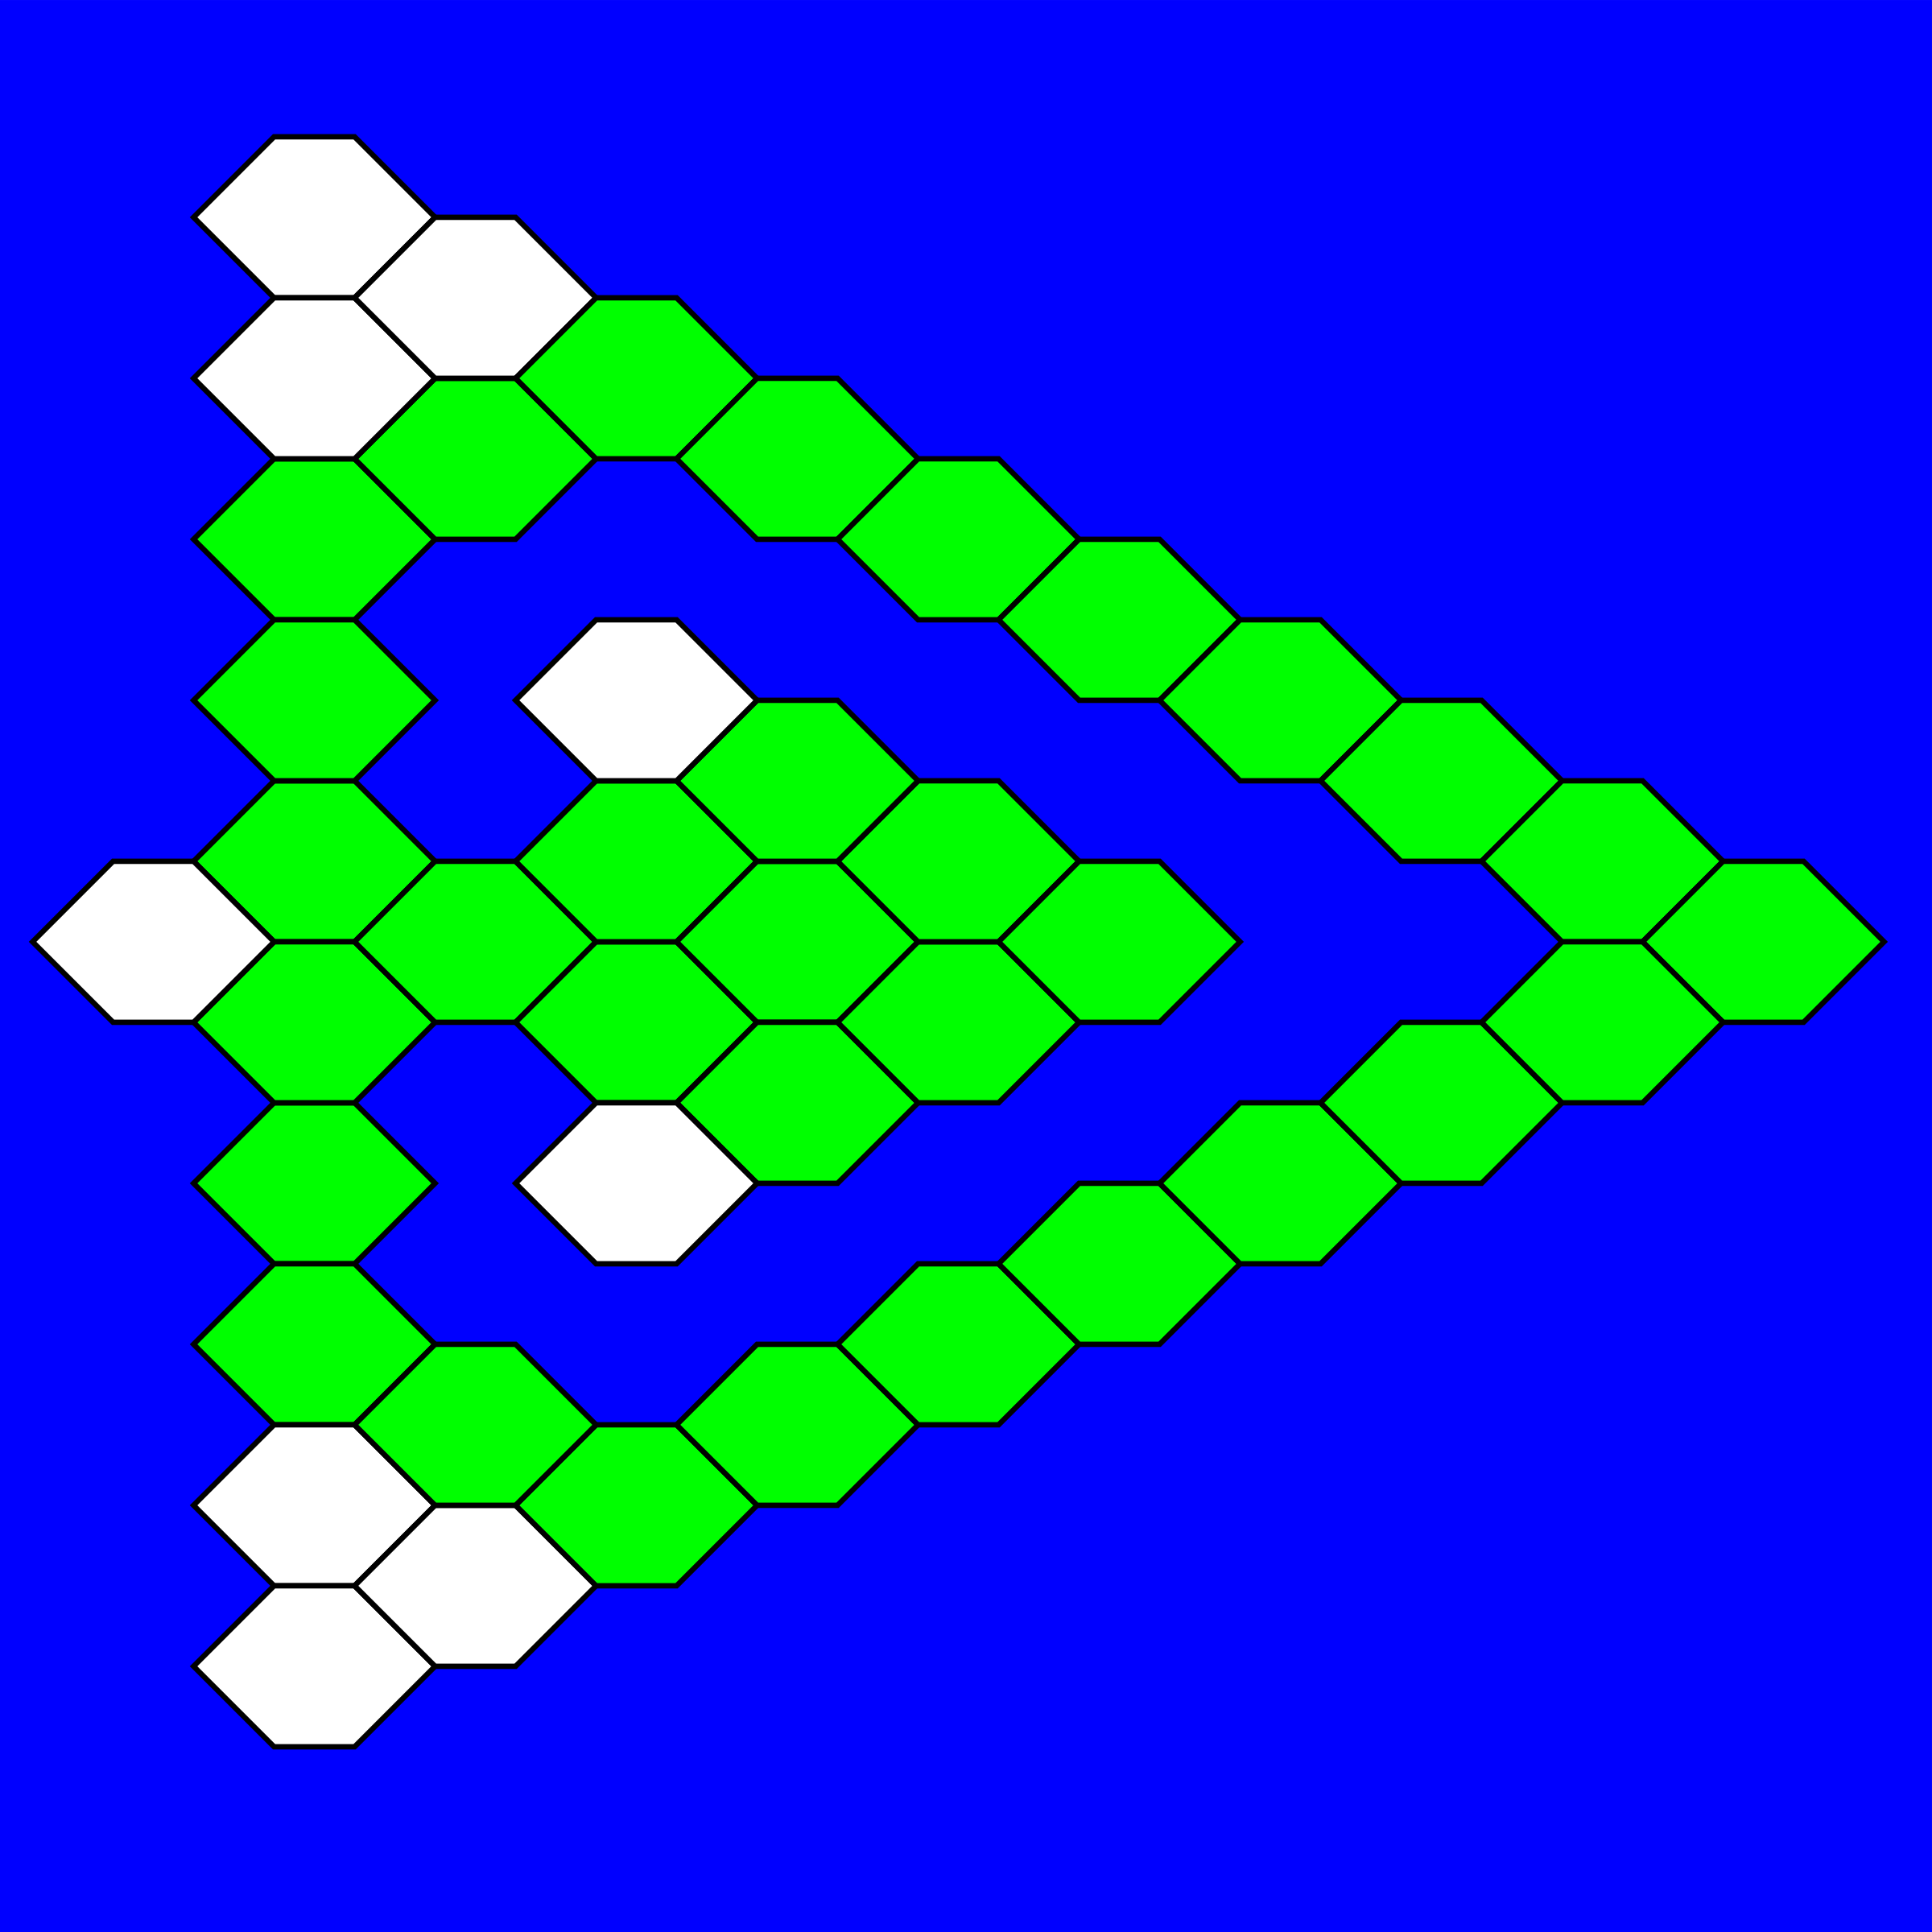 hex-a-hop triangular by 10binary